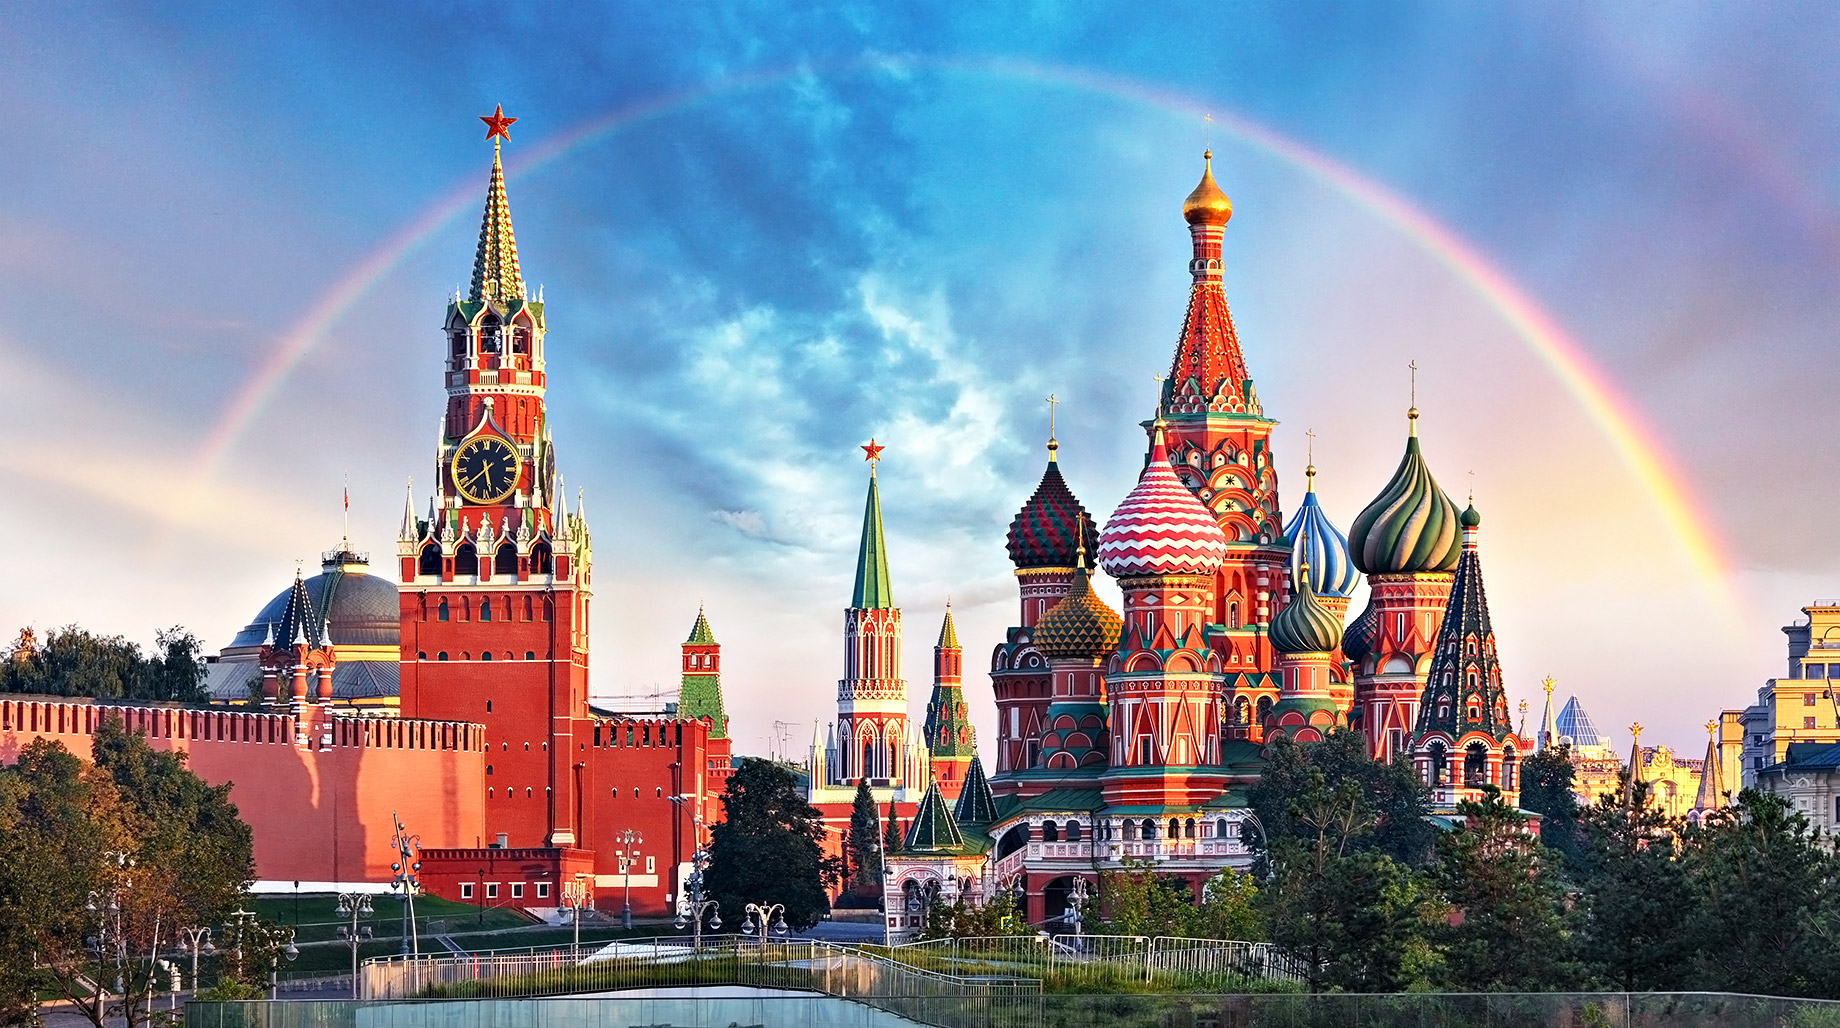 Red Square - Moscow Kremlin & Saint Basil's Cathedral - Moscow, Russia - Top 10 Luxury Travel Destinations Around the World